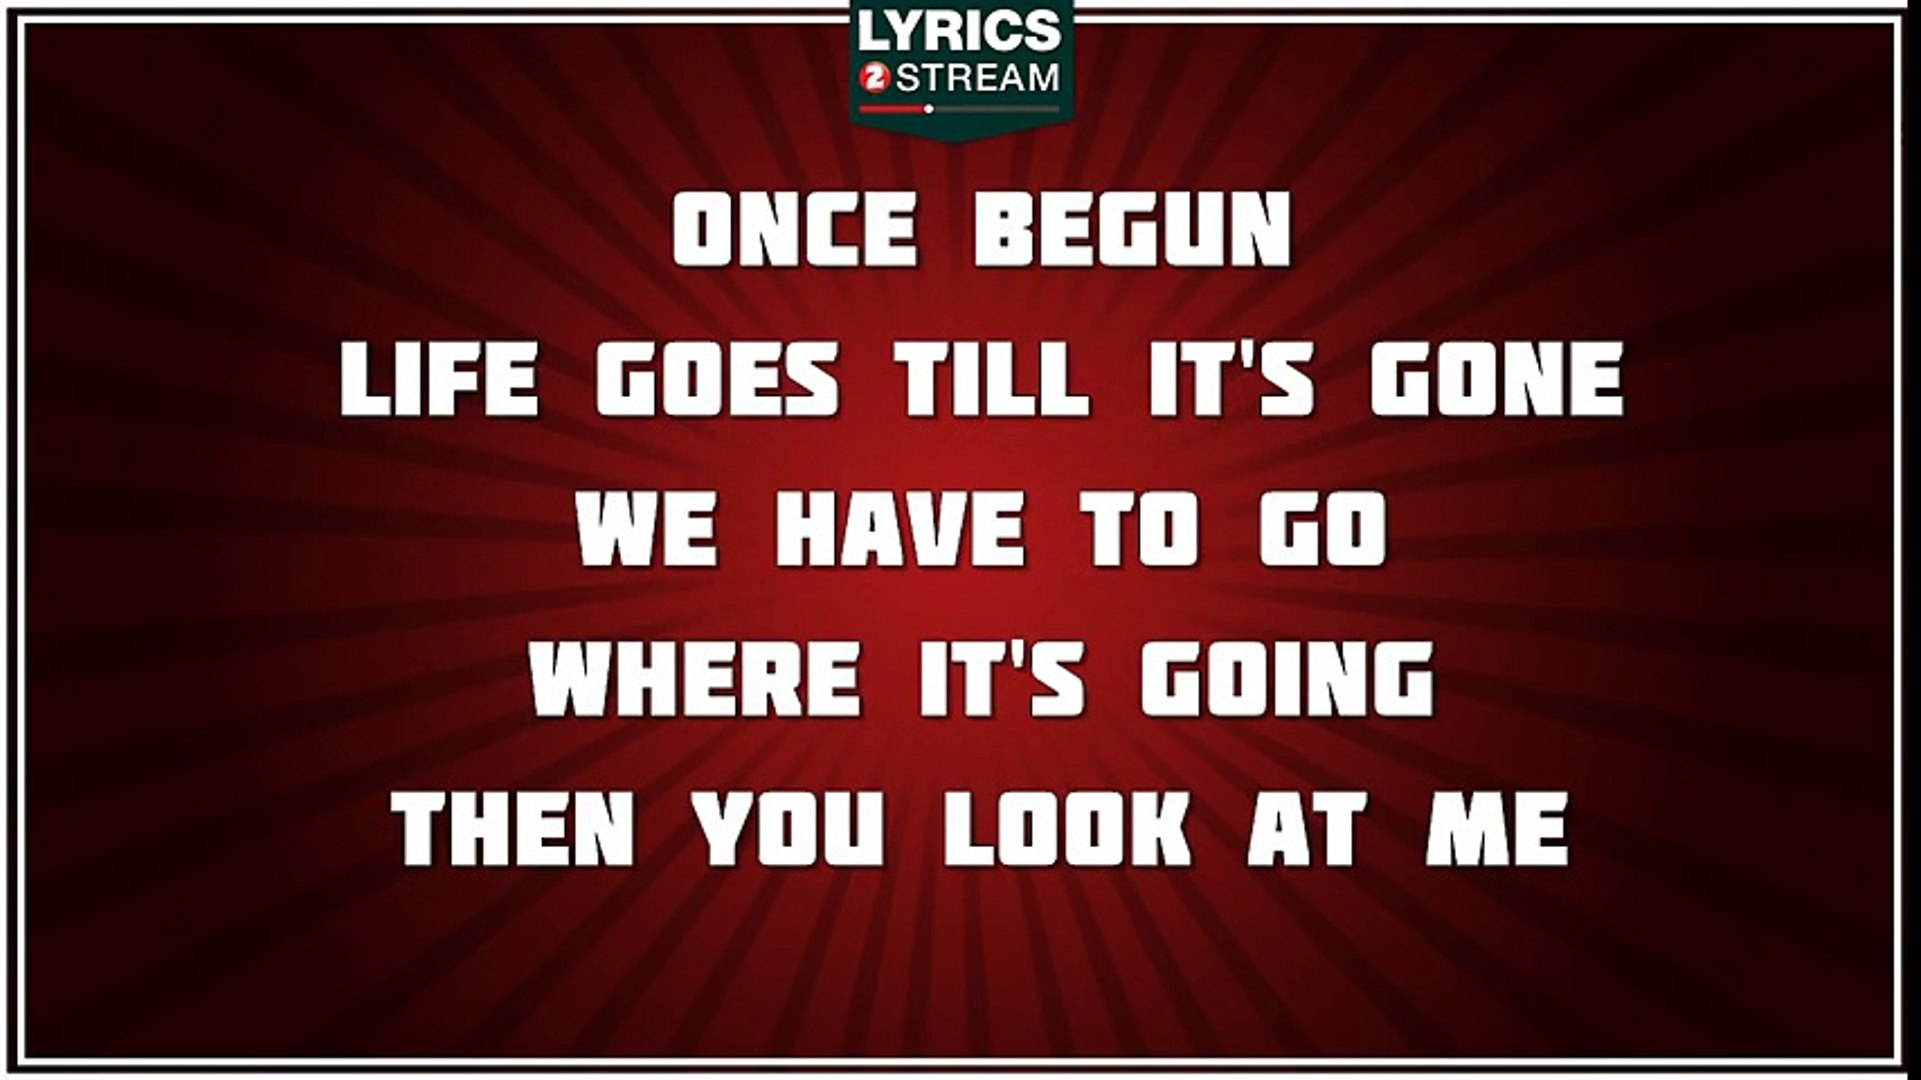 Then you look at me lyrics by celine dion